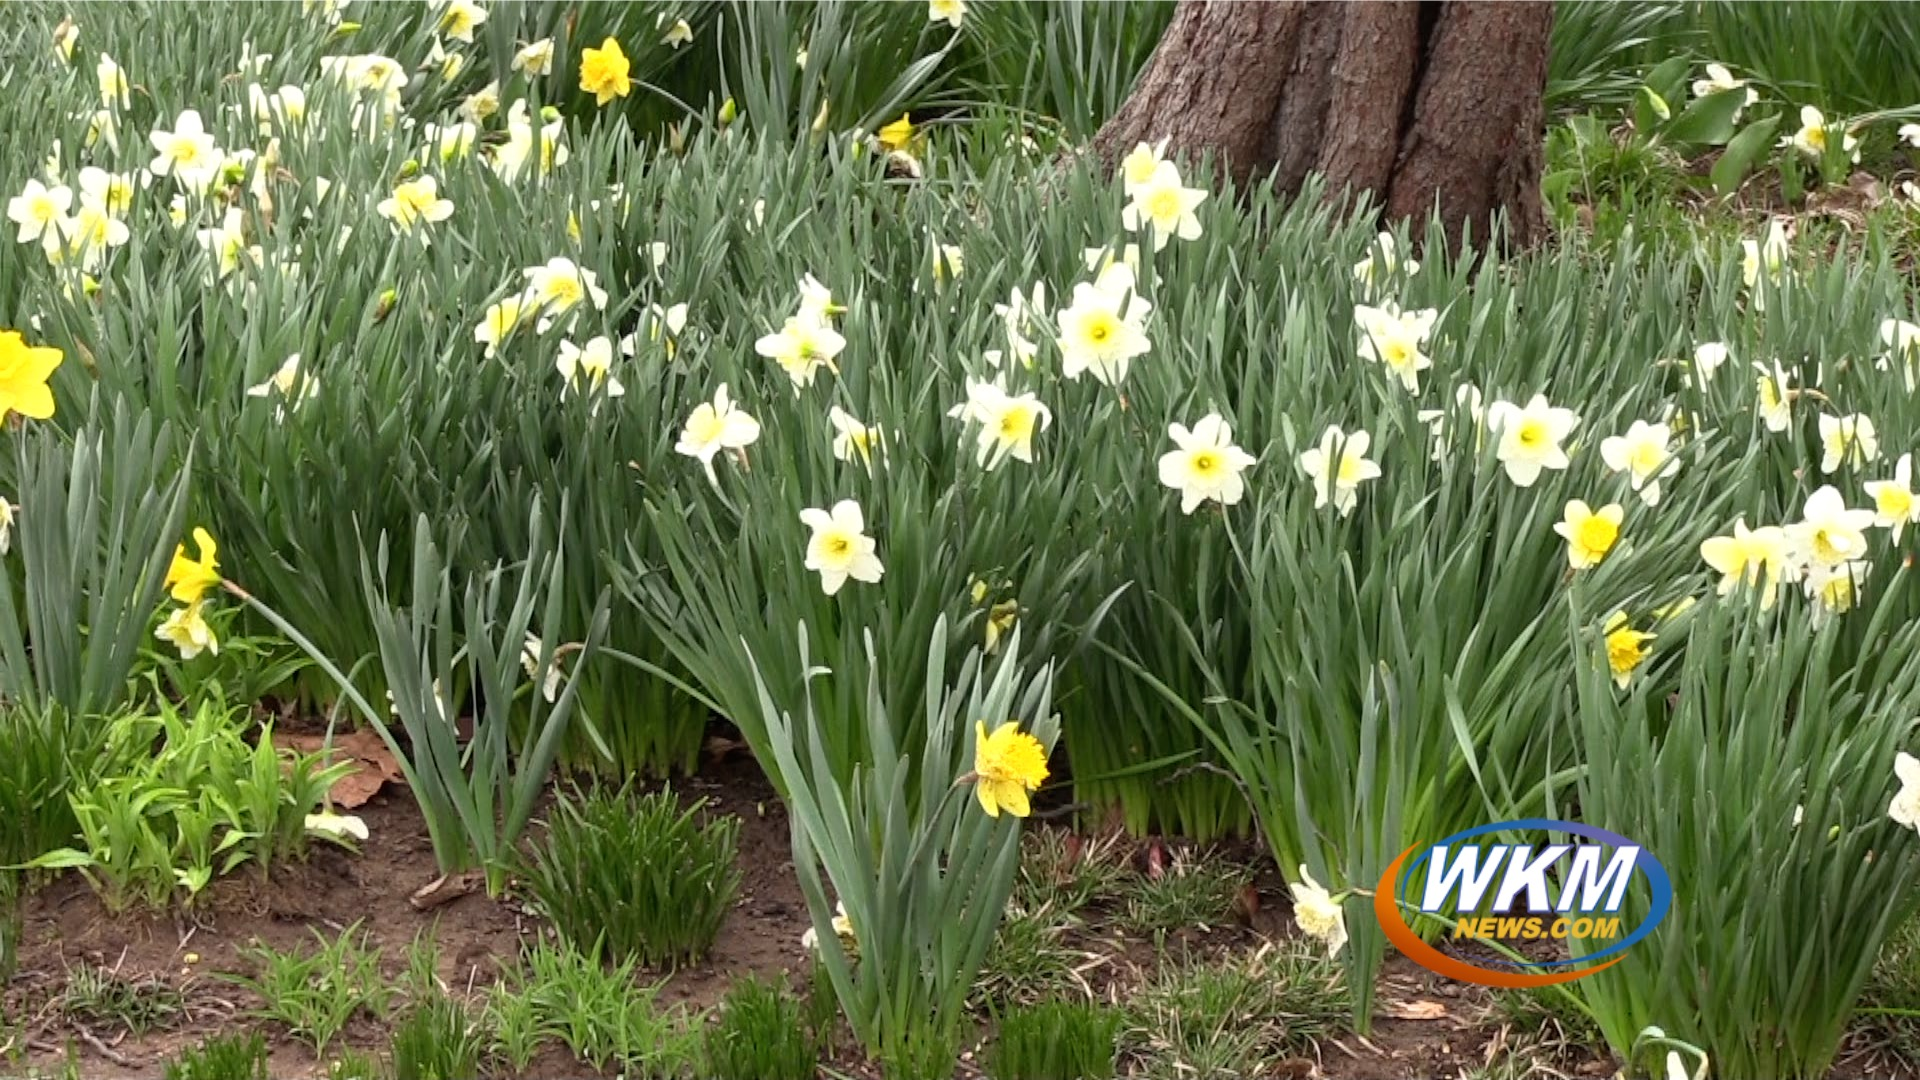 It's Officially Spring! Does That Mean Spring Weather? Find Out in Your WKM News Weekend Weather Forecast!